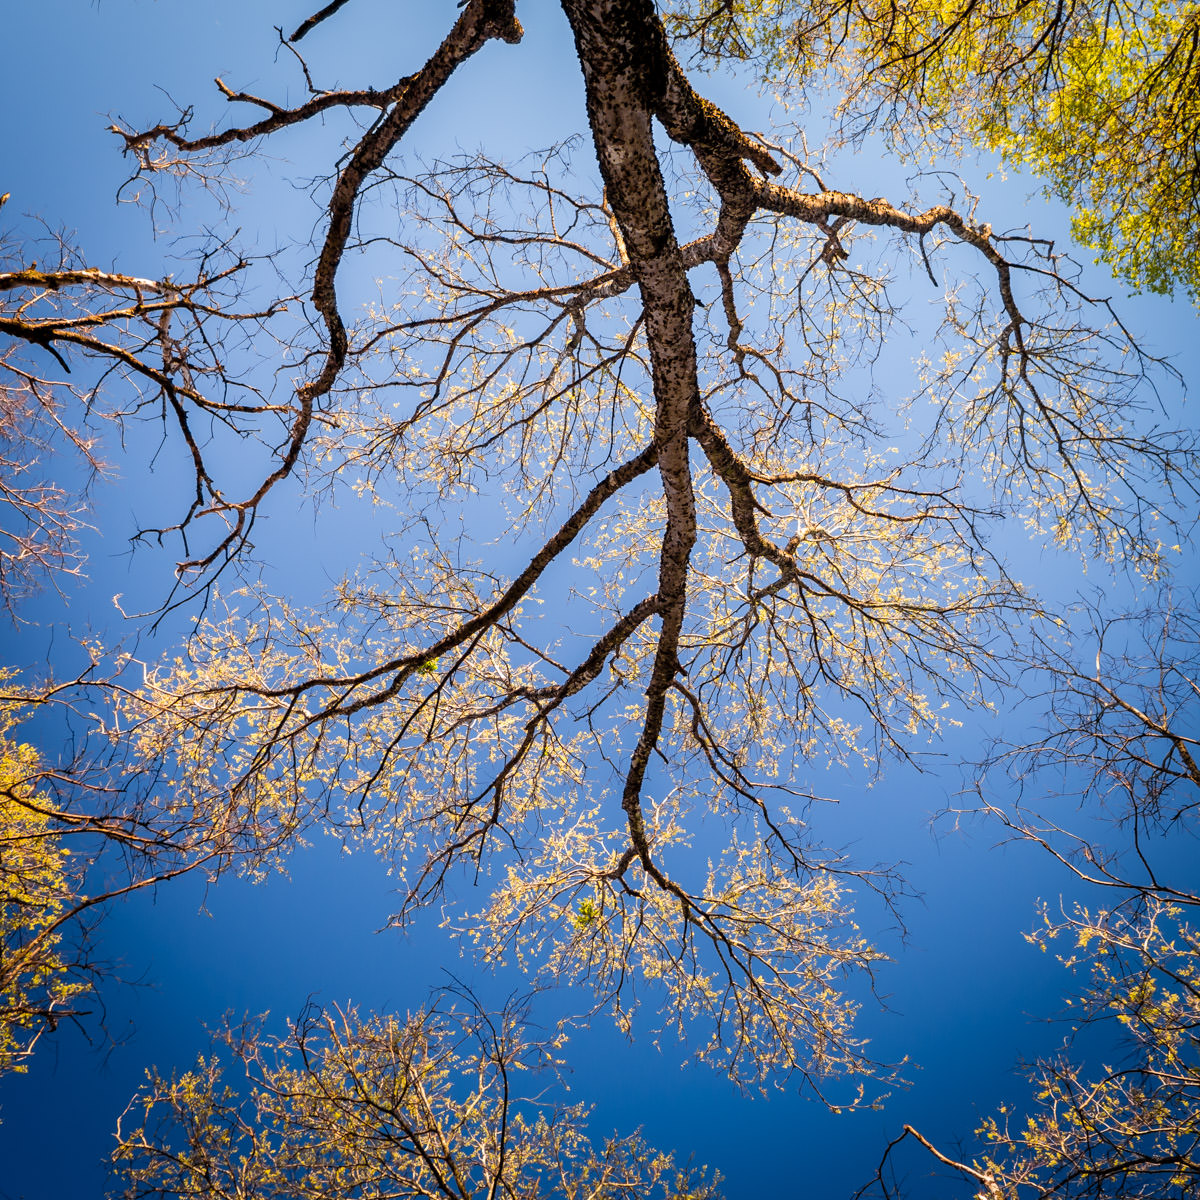 A tree growing in Dallas' Great Trinity Forest resembles the dendrite structures of a nerve cell.